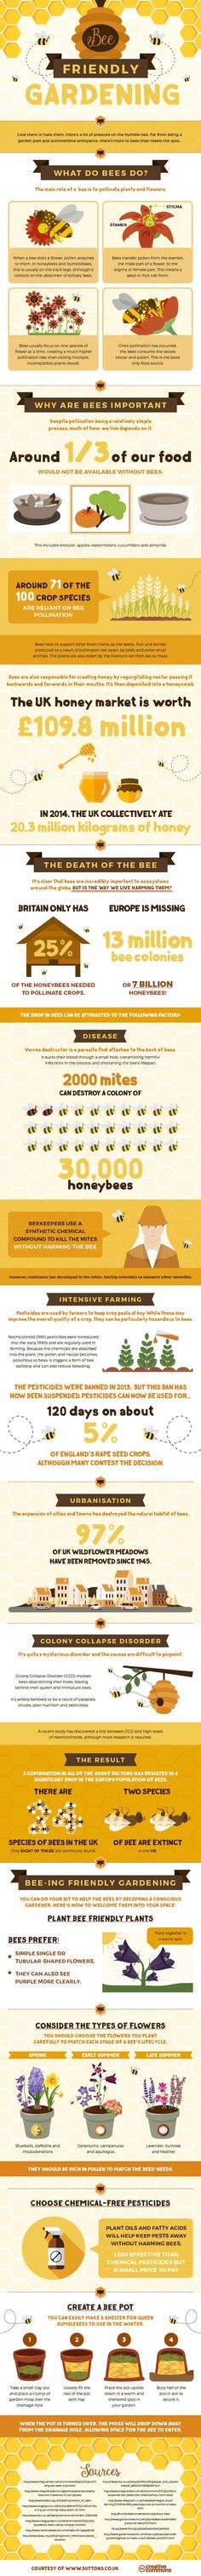 honeybee, pollinators, infographic, colony collapse disorder, honeybee infographic, reader submitted content